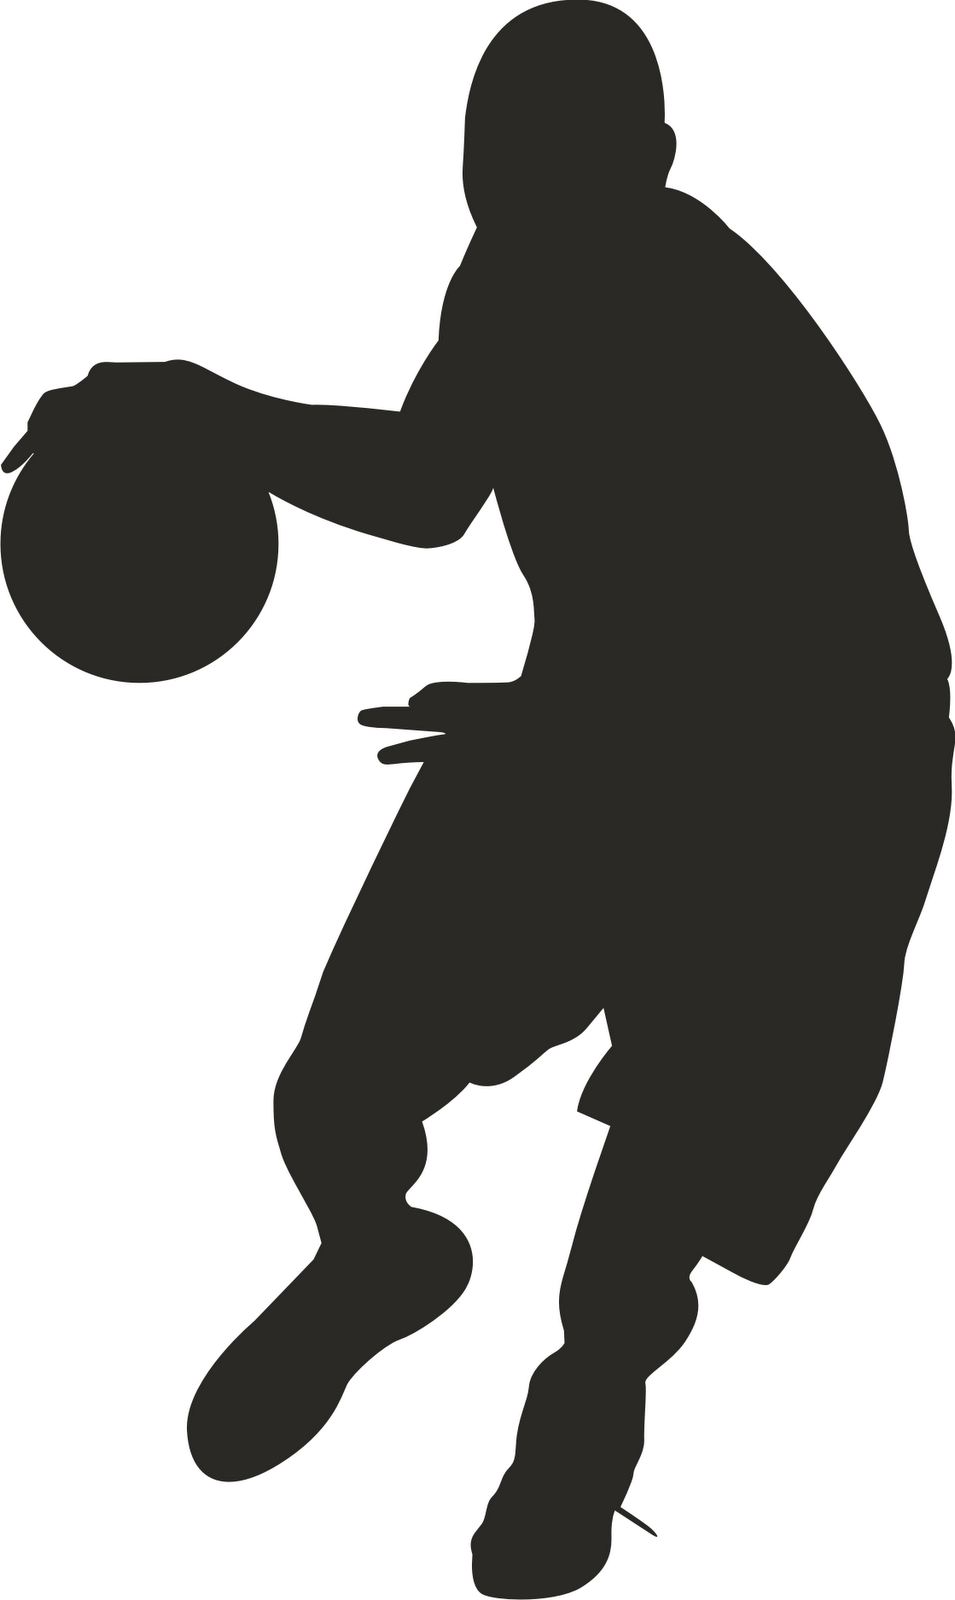 Animated Basketball Clipart   Clipart Best